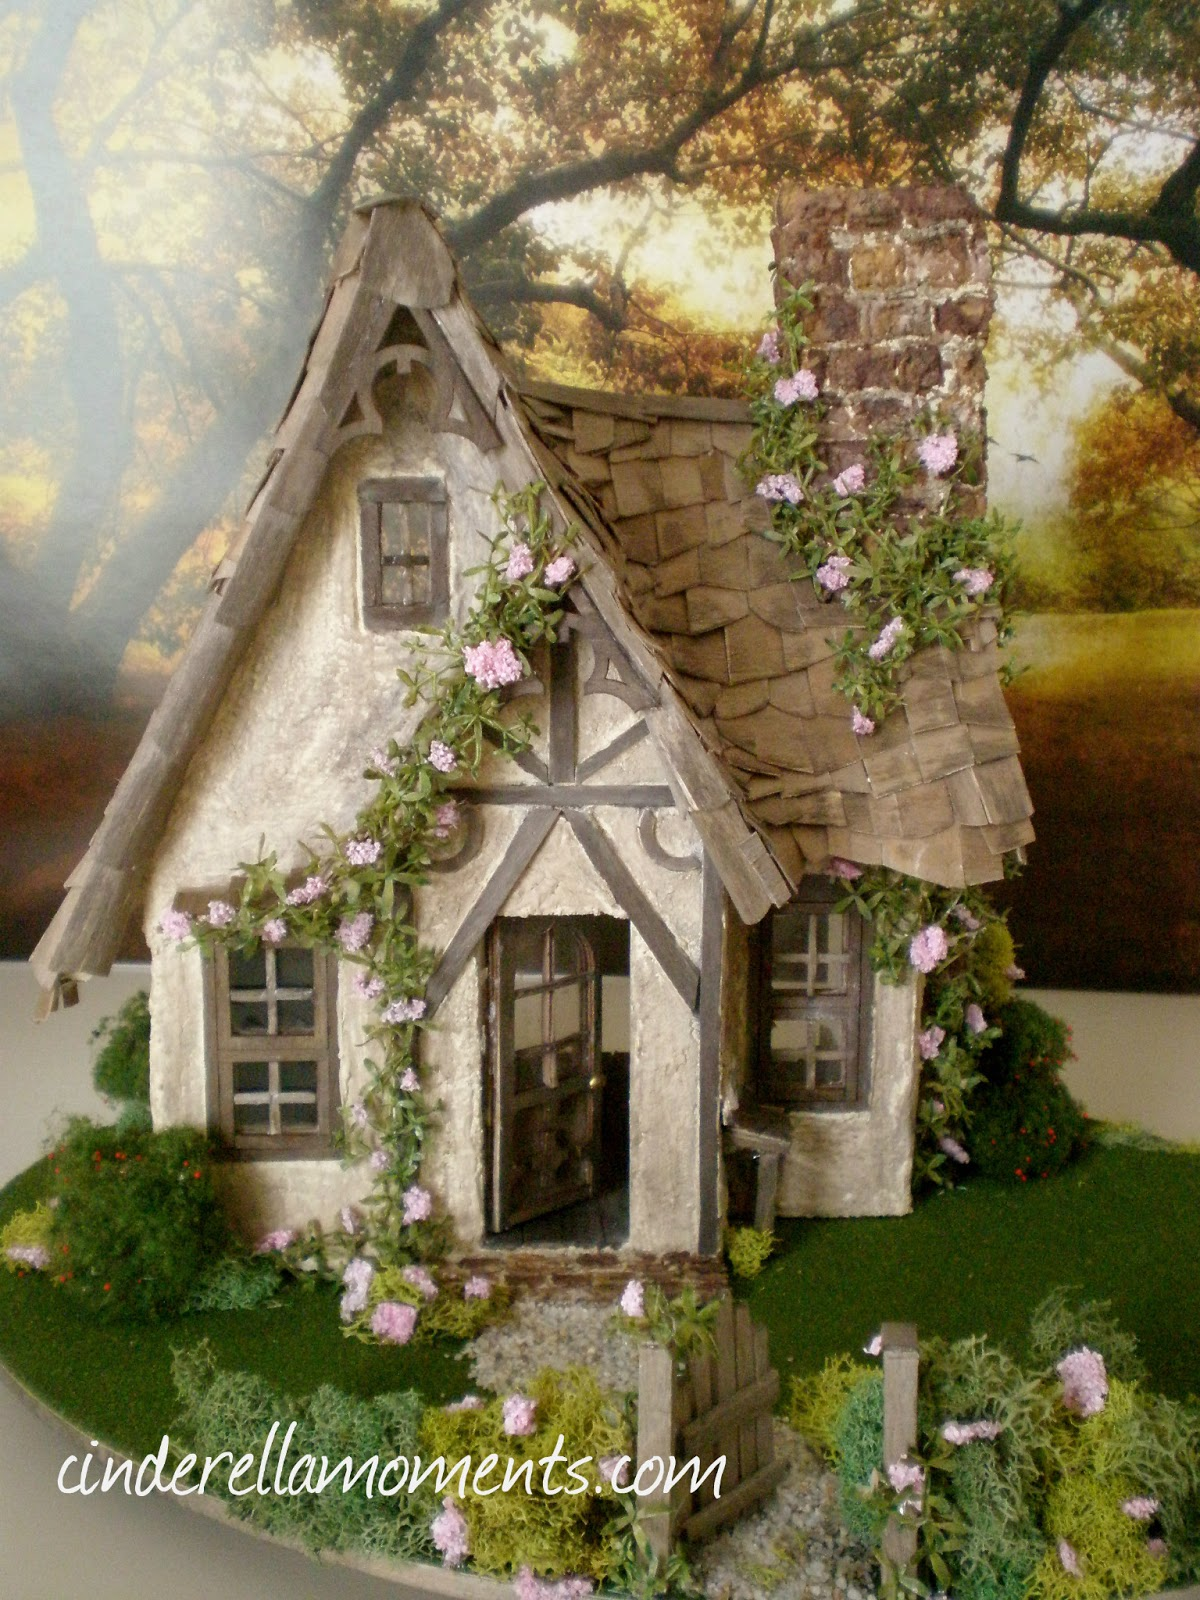 Cinderella Moments Miss Reads English Cottage